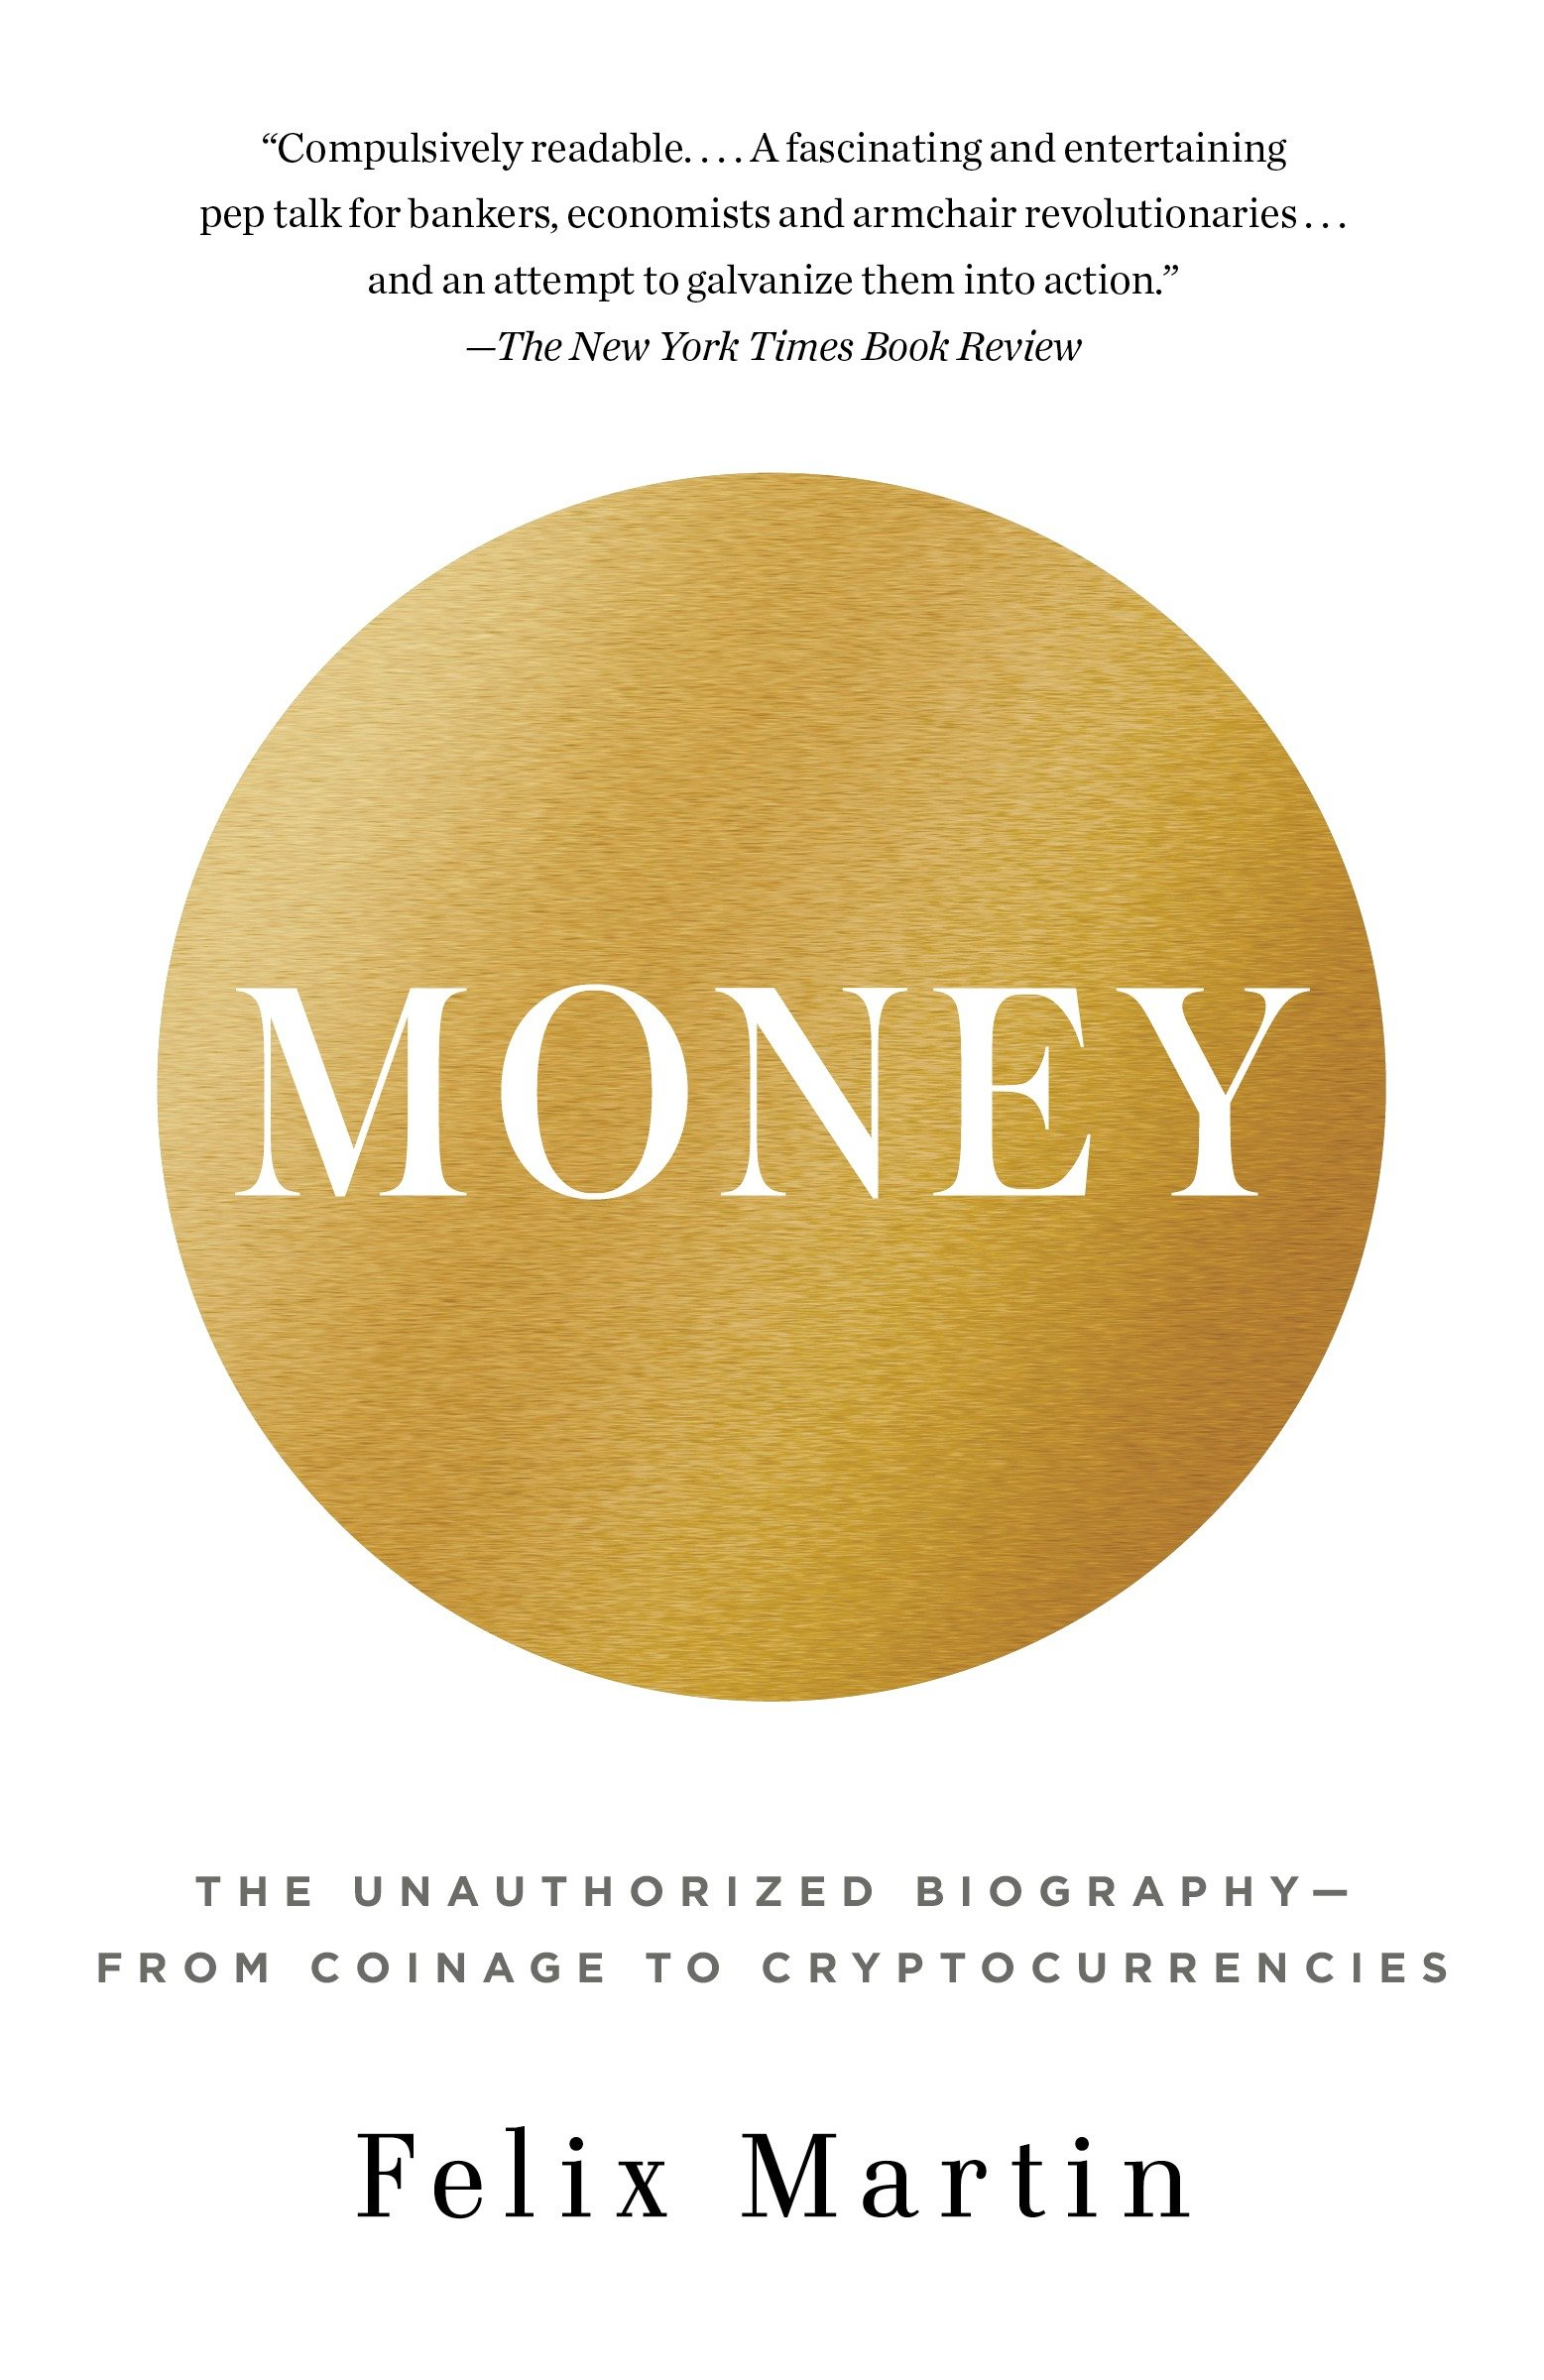 Money the unauthorized biography cover image